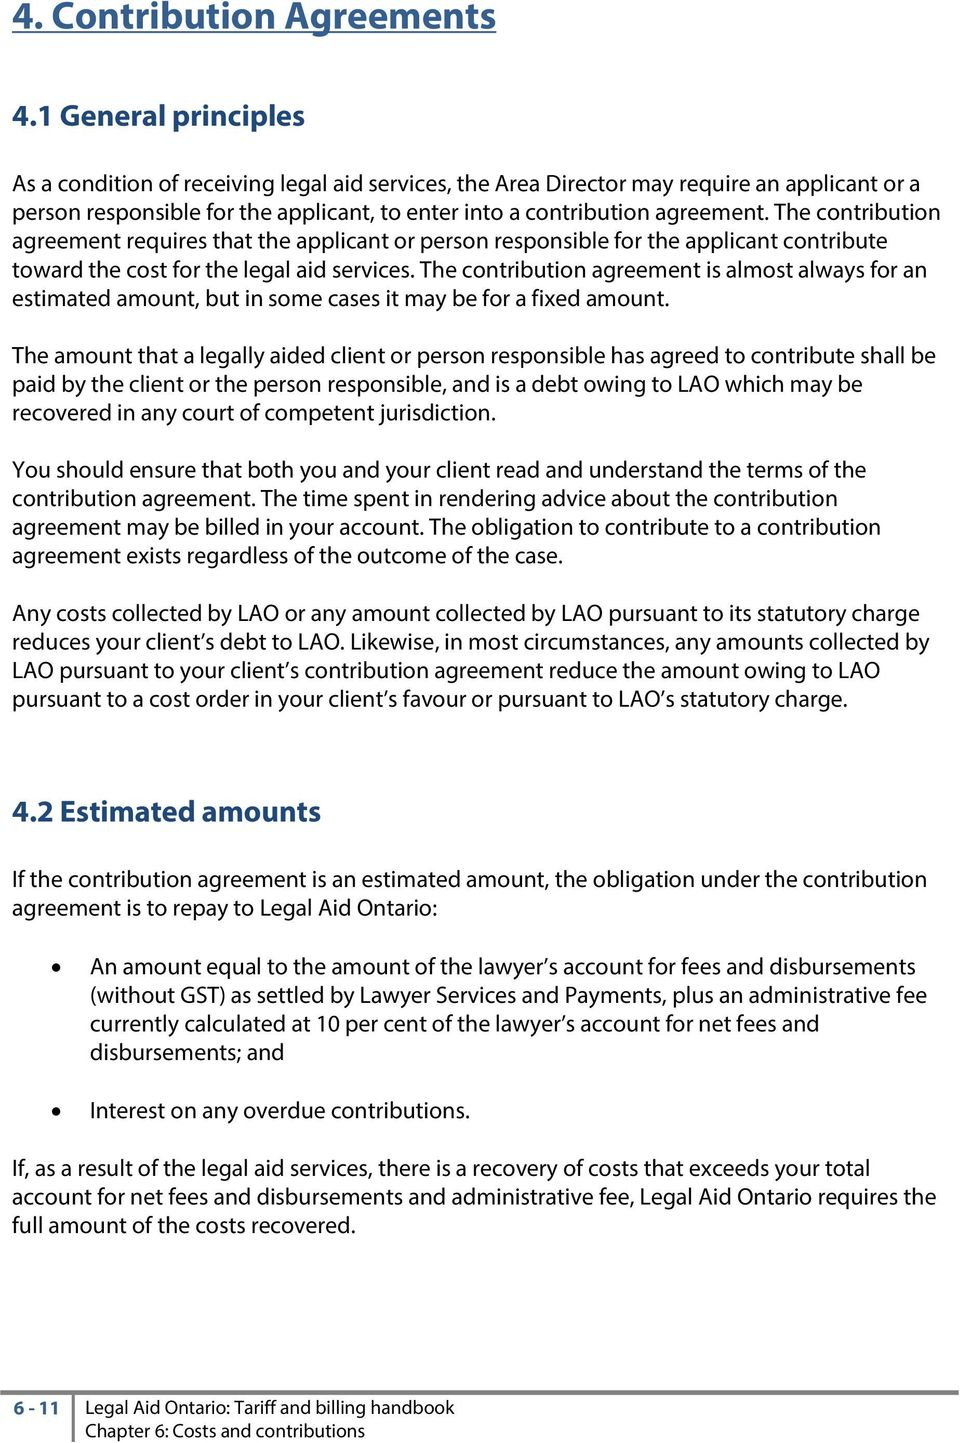 The contribution agreement requires that the applicant or person responsible for the applicant contribute toward the cost for the legal aid services.